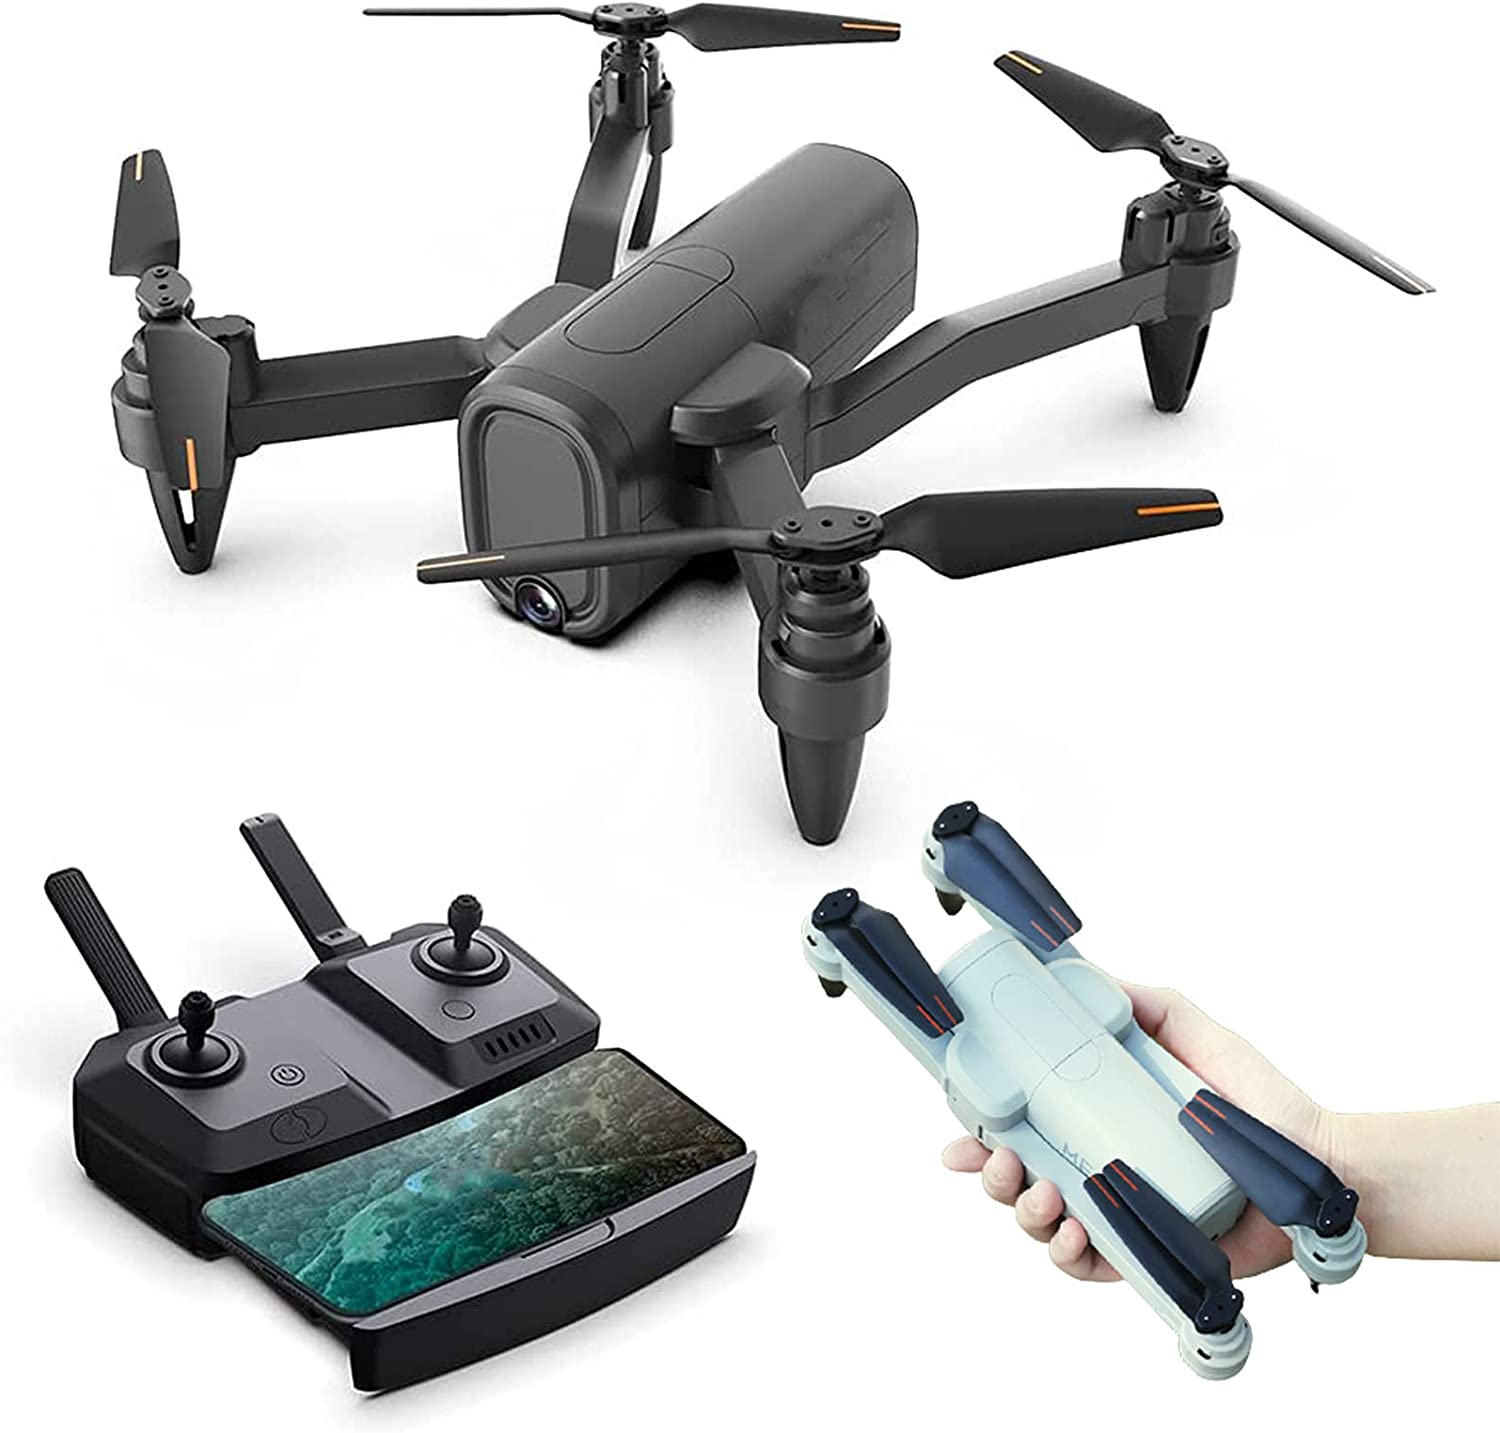 Liawnwooo GPS Jacksonville Mall Drone with 4K Camera Foldable for and OFFicial site Drones Kids